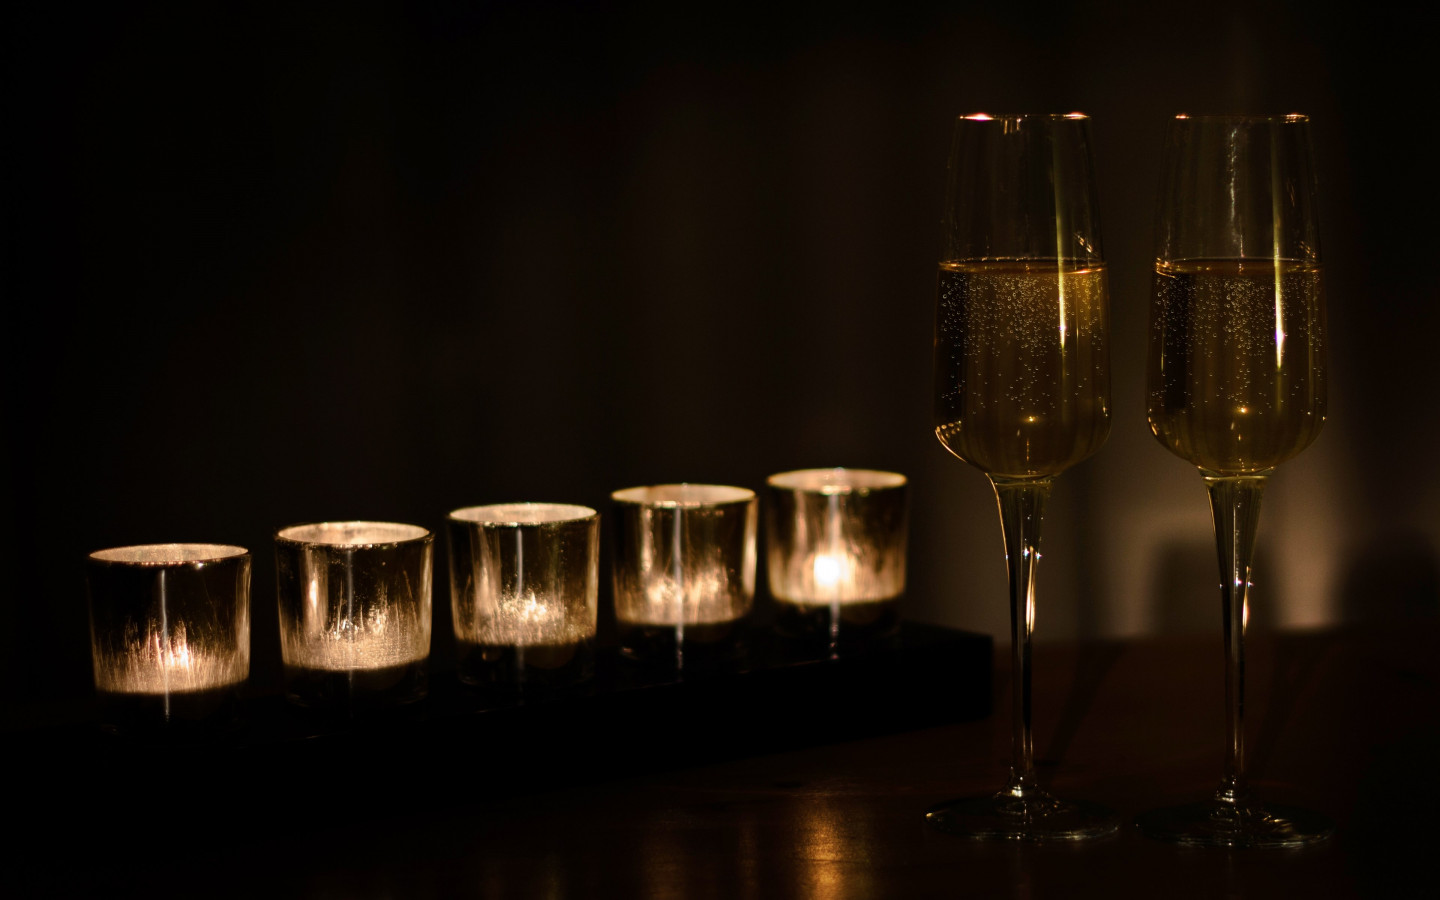 Champagne and candles wallpaper 1440x900